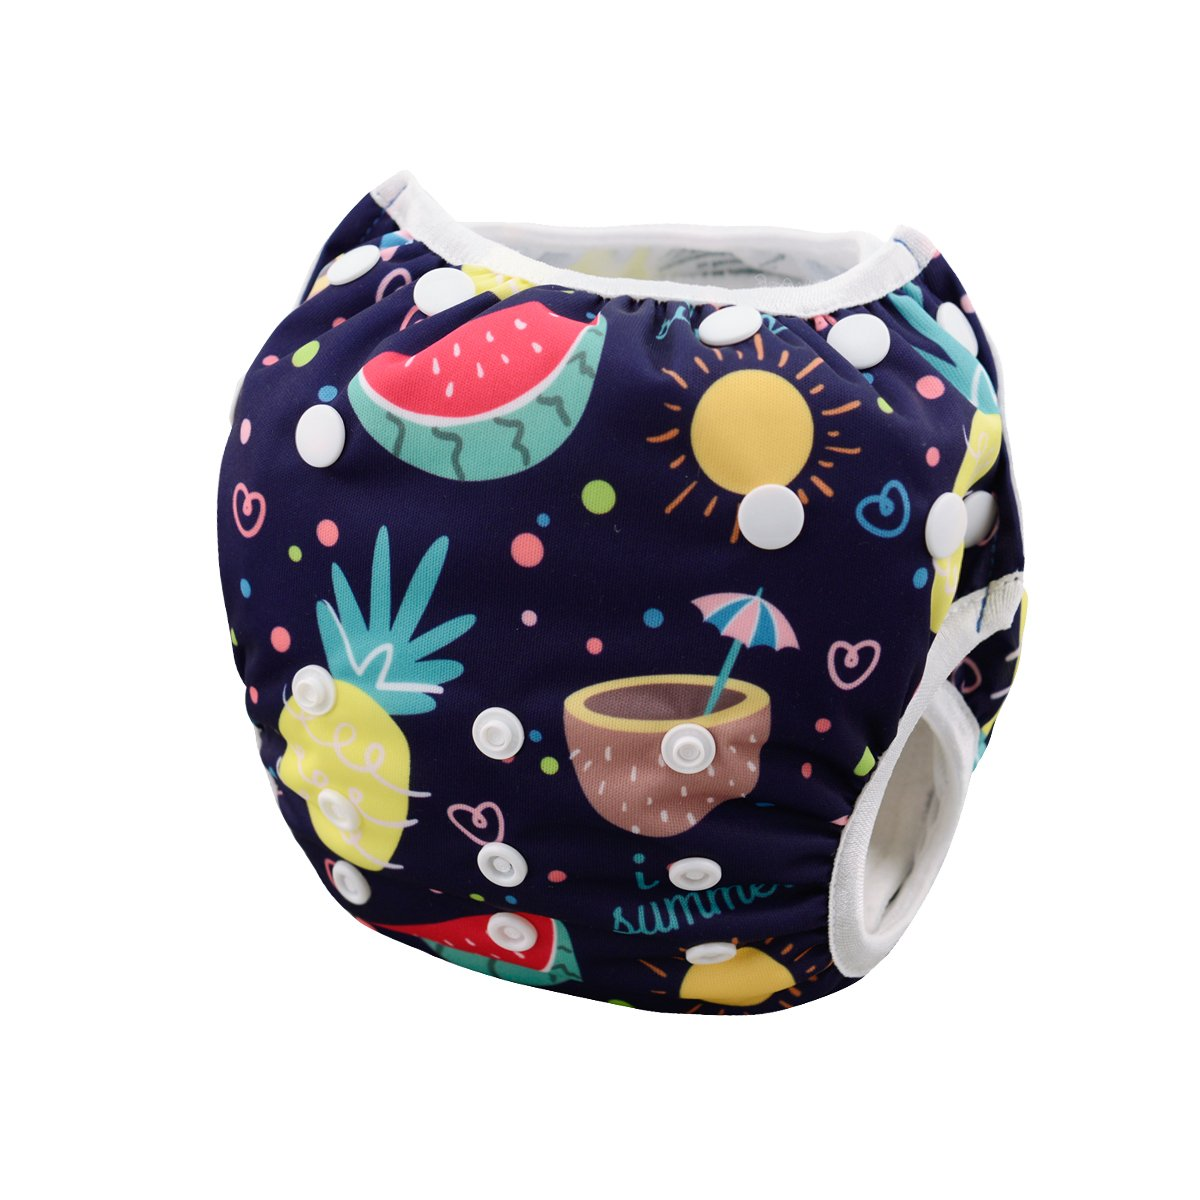 Outdoor Activities and Daily Use babygoal Baby Swim Diapers Fit Babies 0-2 Years SW21-CA Reuseable Washable and Adjustable for Swimming